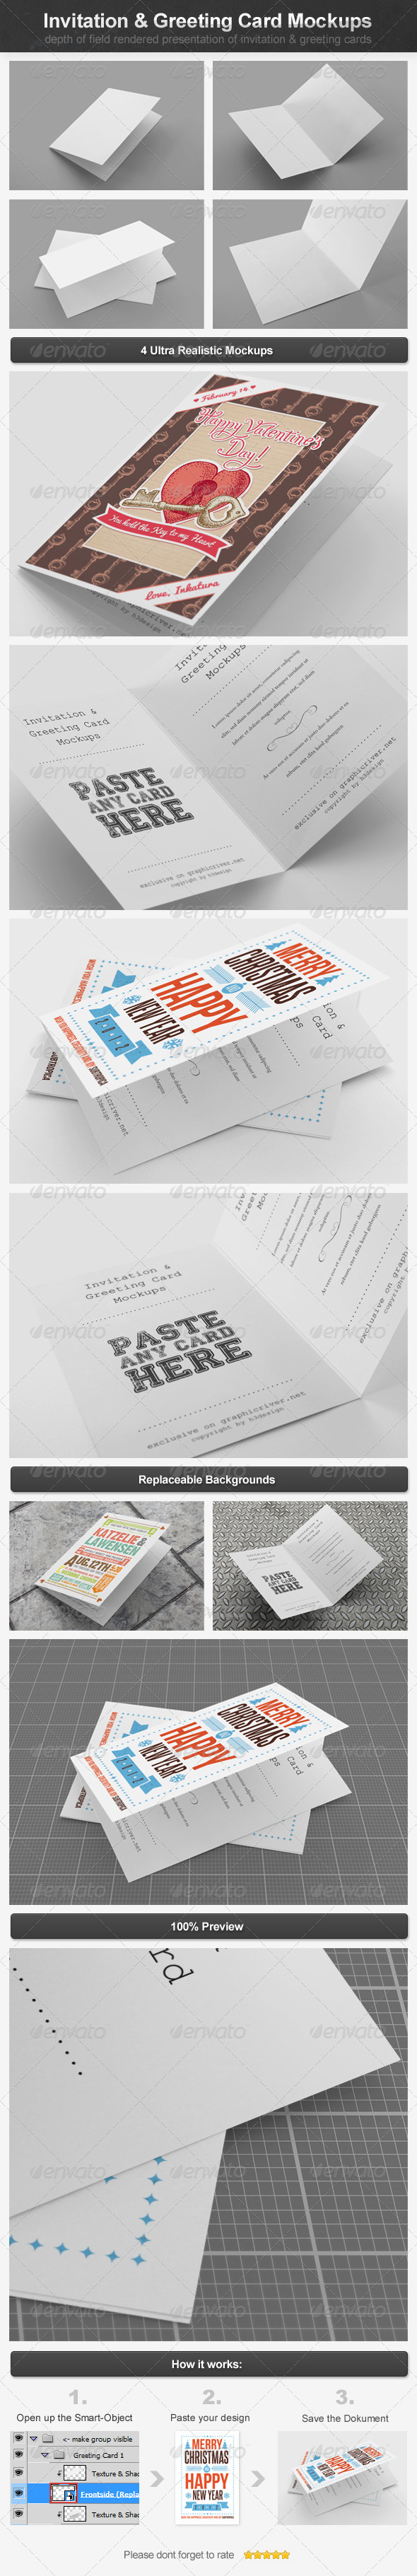 Invitation & Greeting Card Mockups - Miscellaneous Print